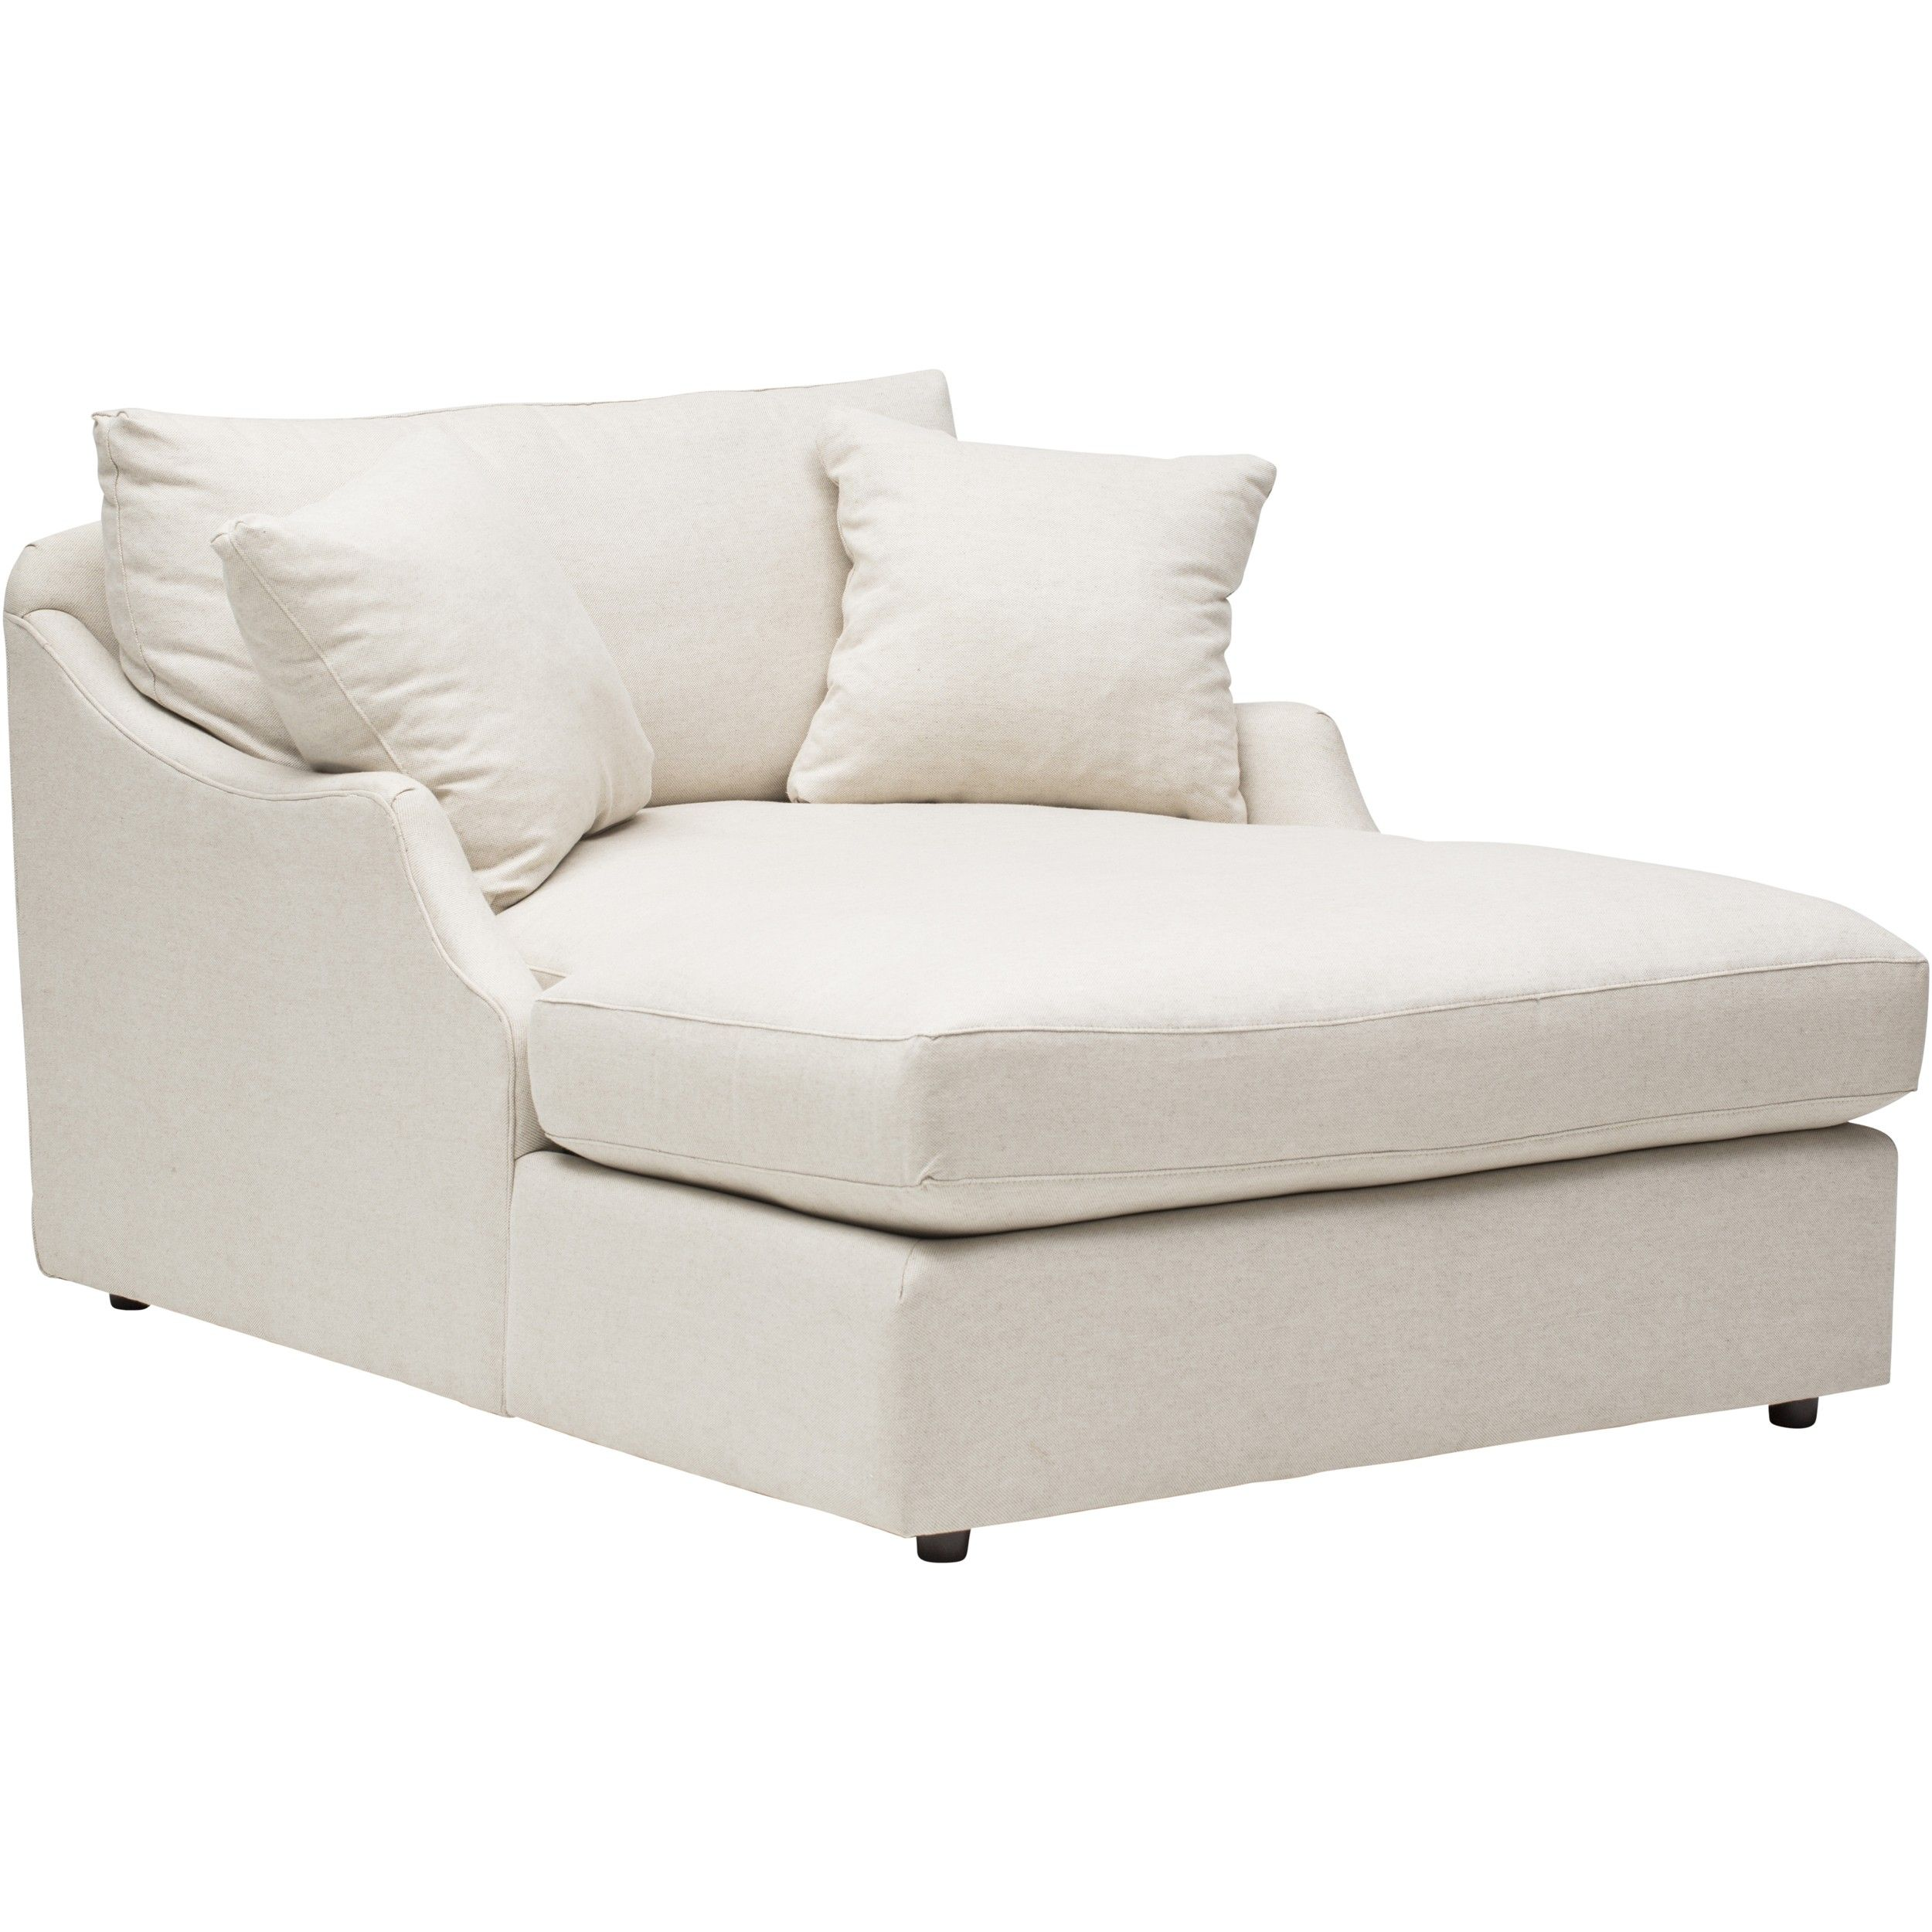 Cozy Chairs Ian Chaise 1 099 00 This Chaise And A Half Looks So